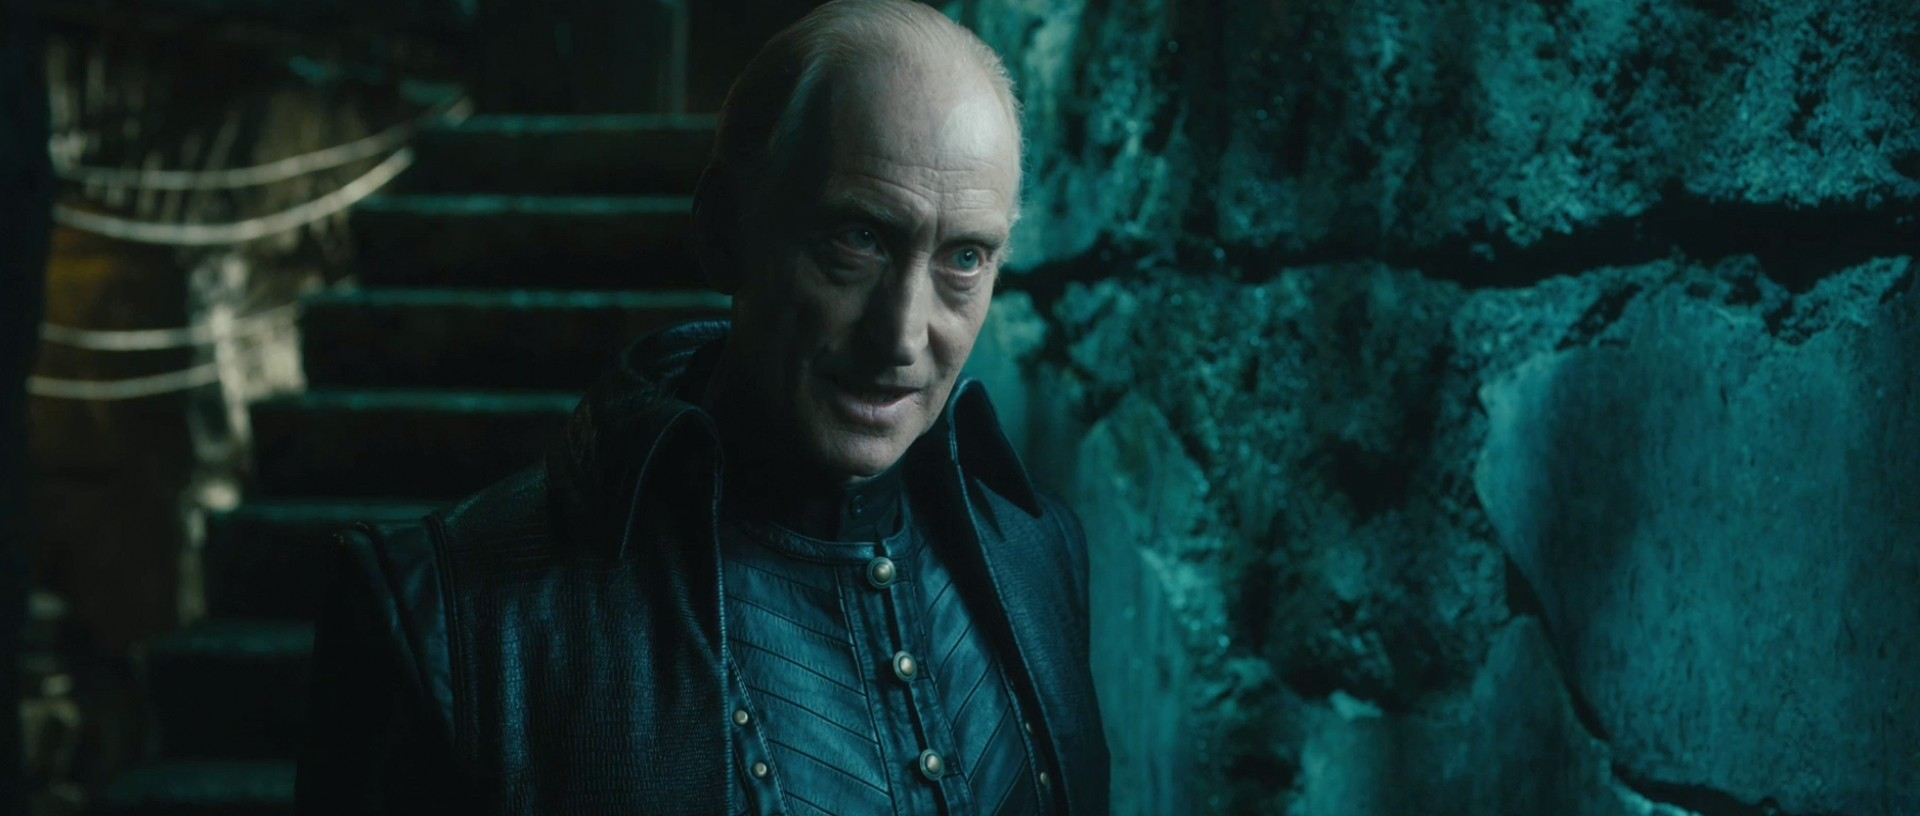 Charles Dance returns as one of the key Underworld characters.